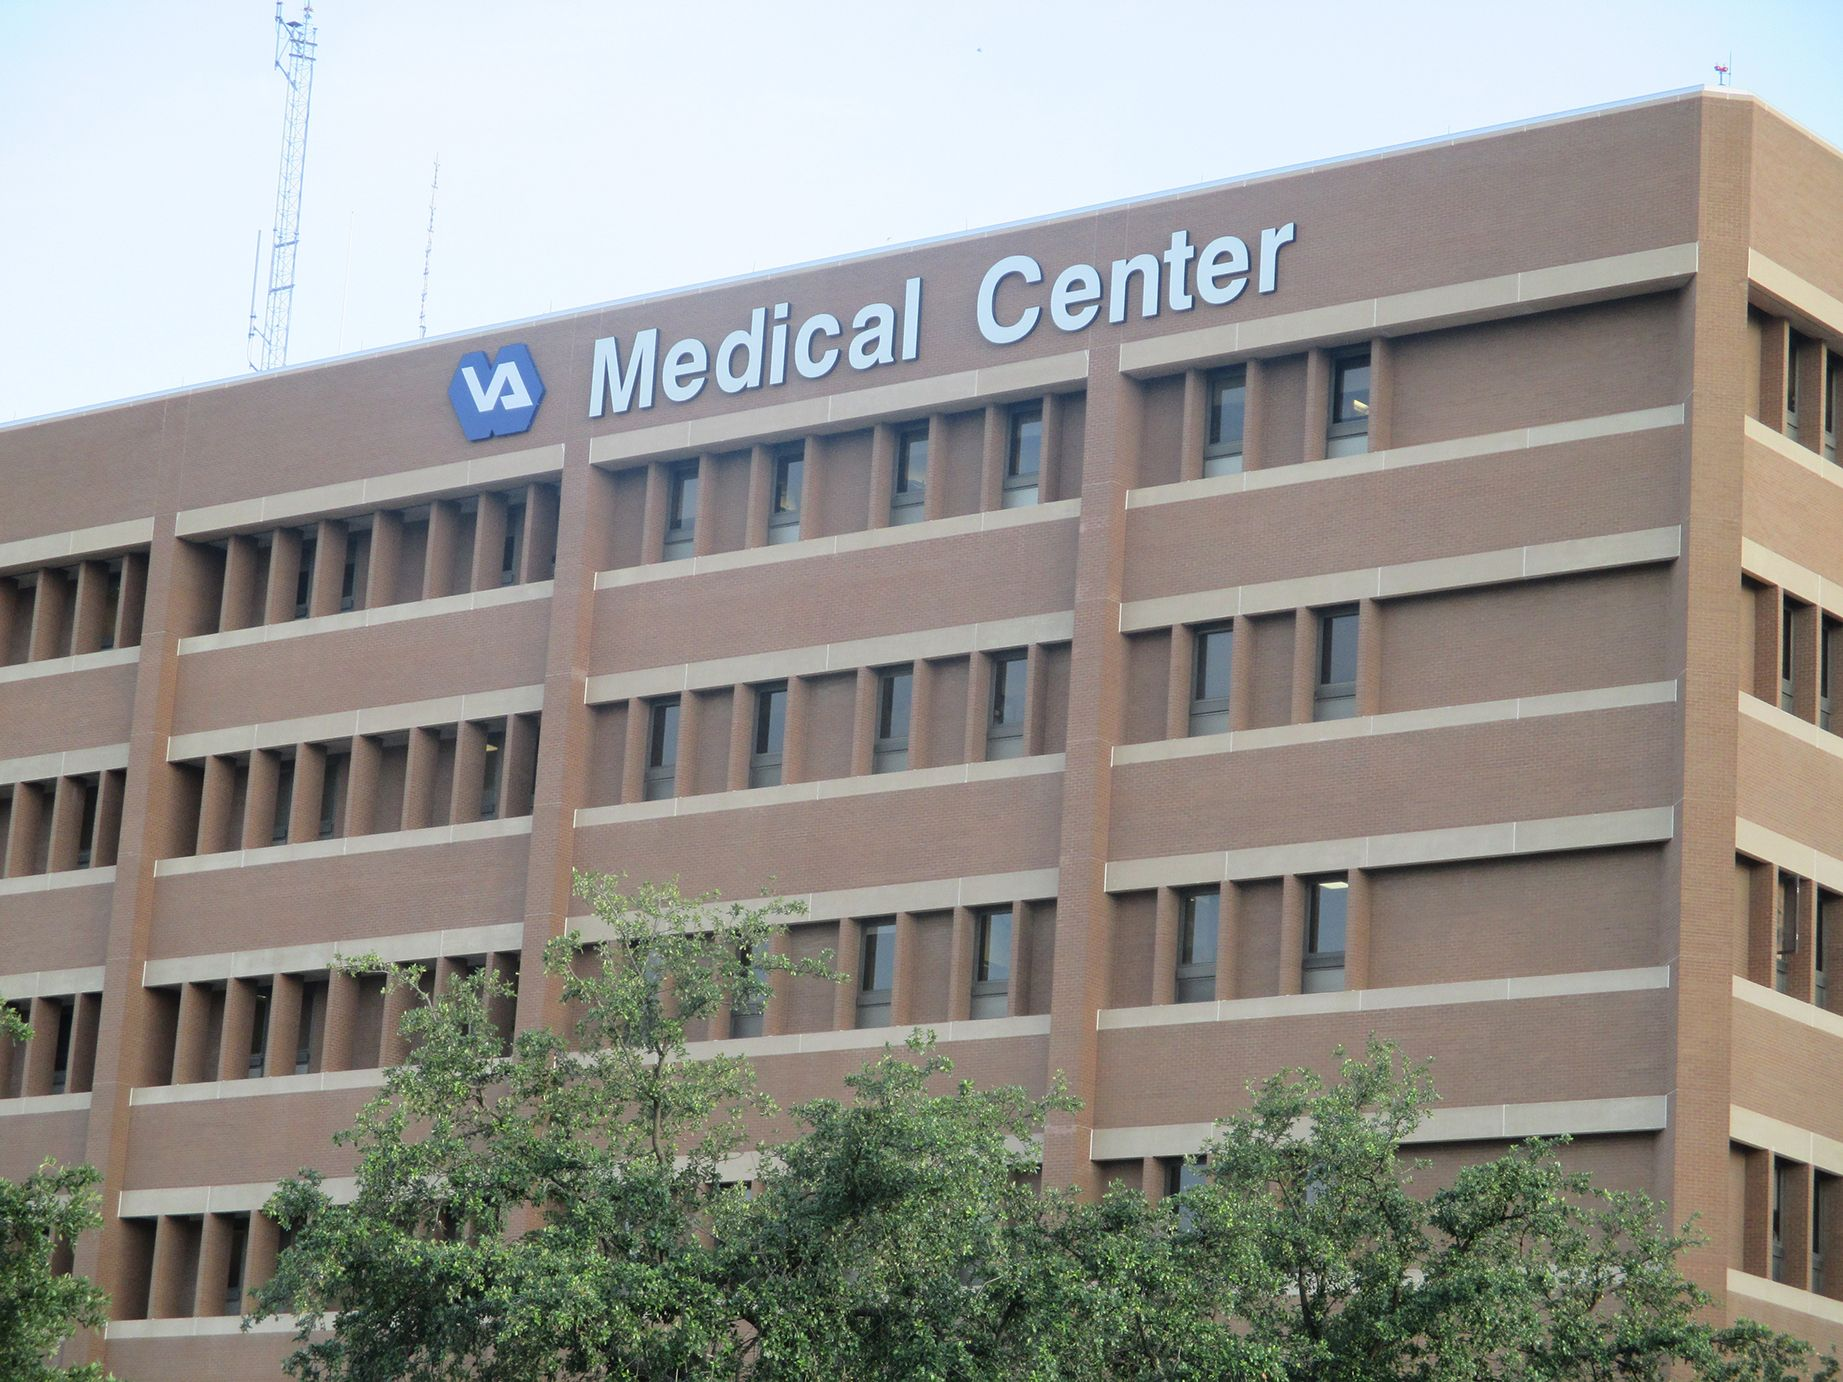 Veterans Affairs (VA) hospitals and medical centers across the U.S. have turned to secure messaging solutions